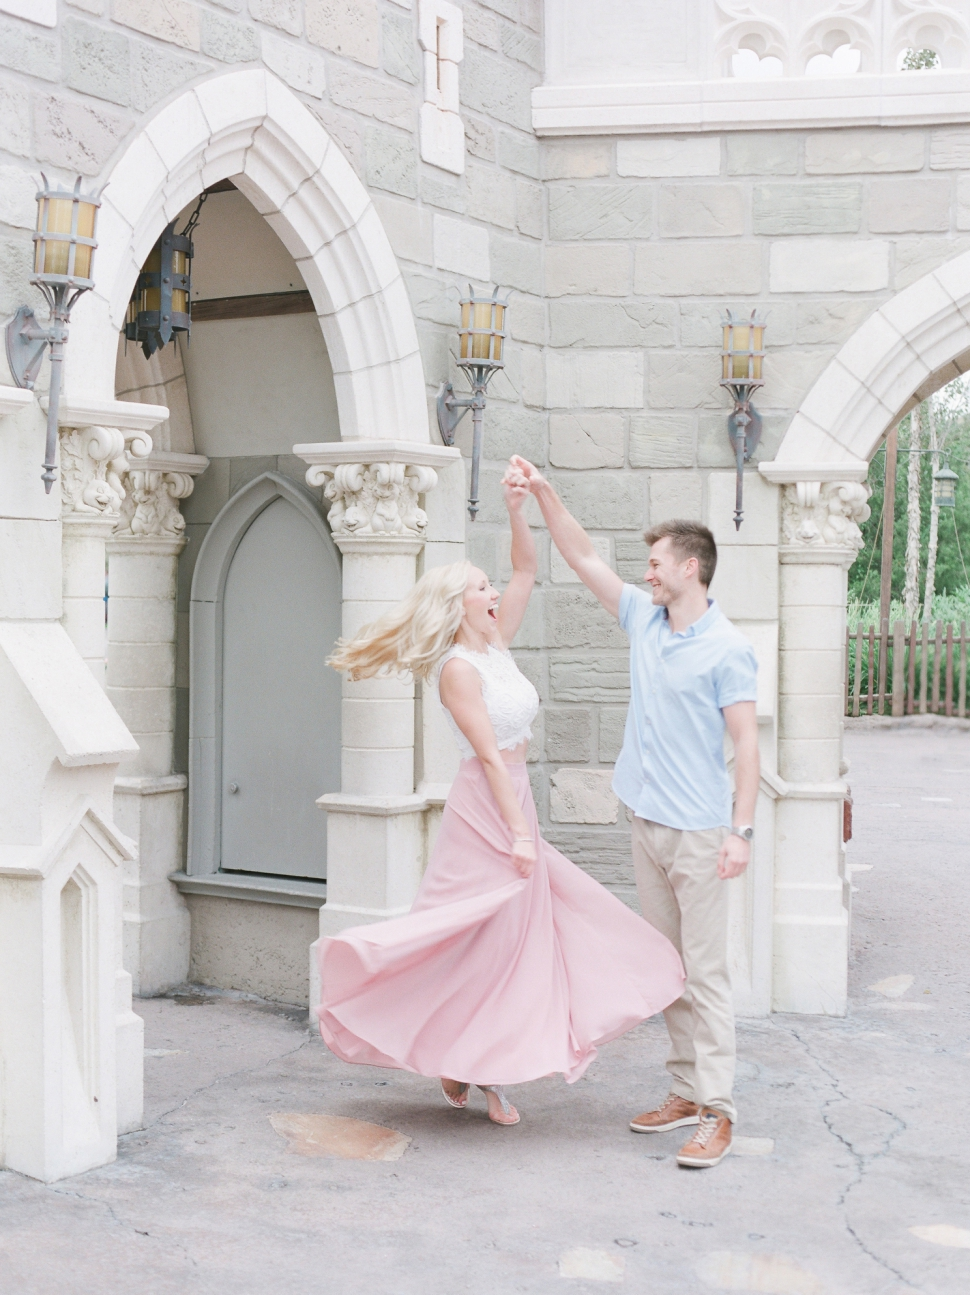 Disney-World-Engagement-Photographer-Cassi-Claire-Disney-World-Orlando-Florida_12.jpg